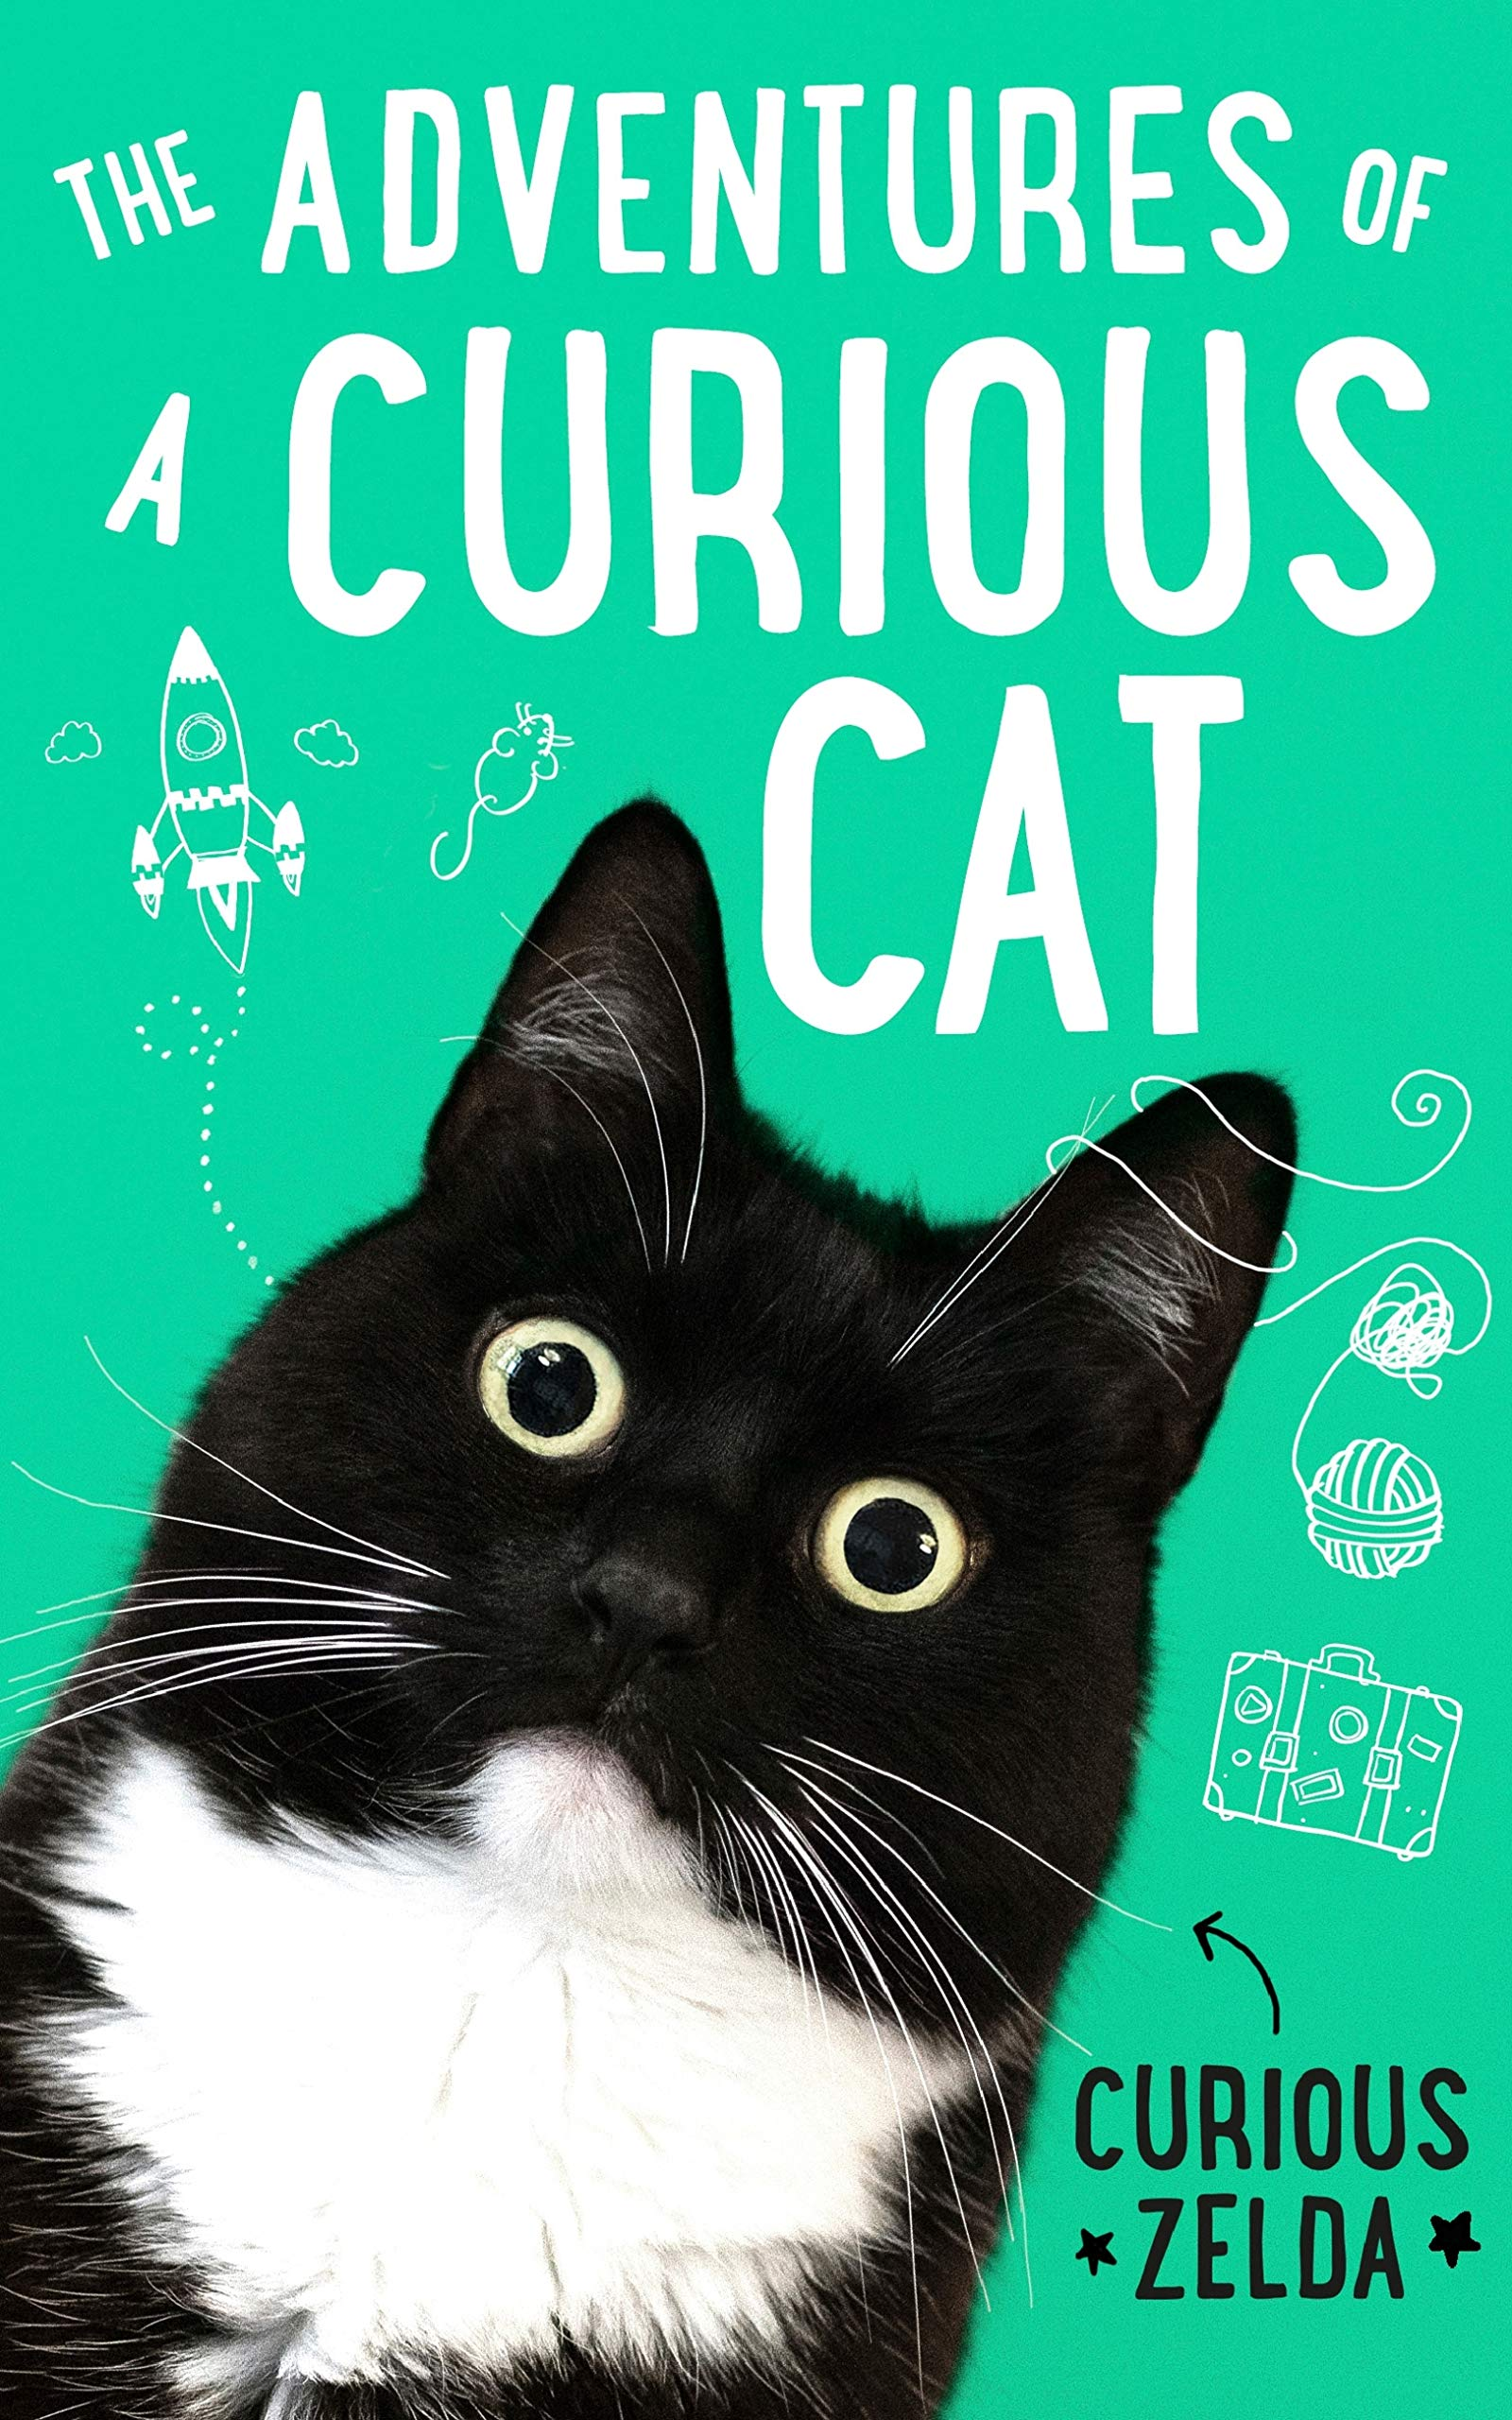 The Adventures of a Curious Cat: wit and wisdom from Curious Zelda purrfect for cats and their humans (English Edition)